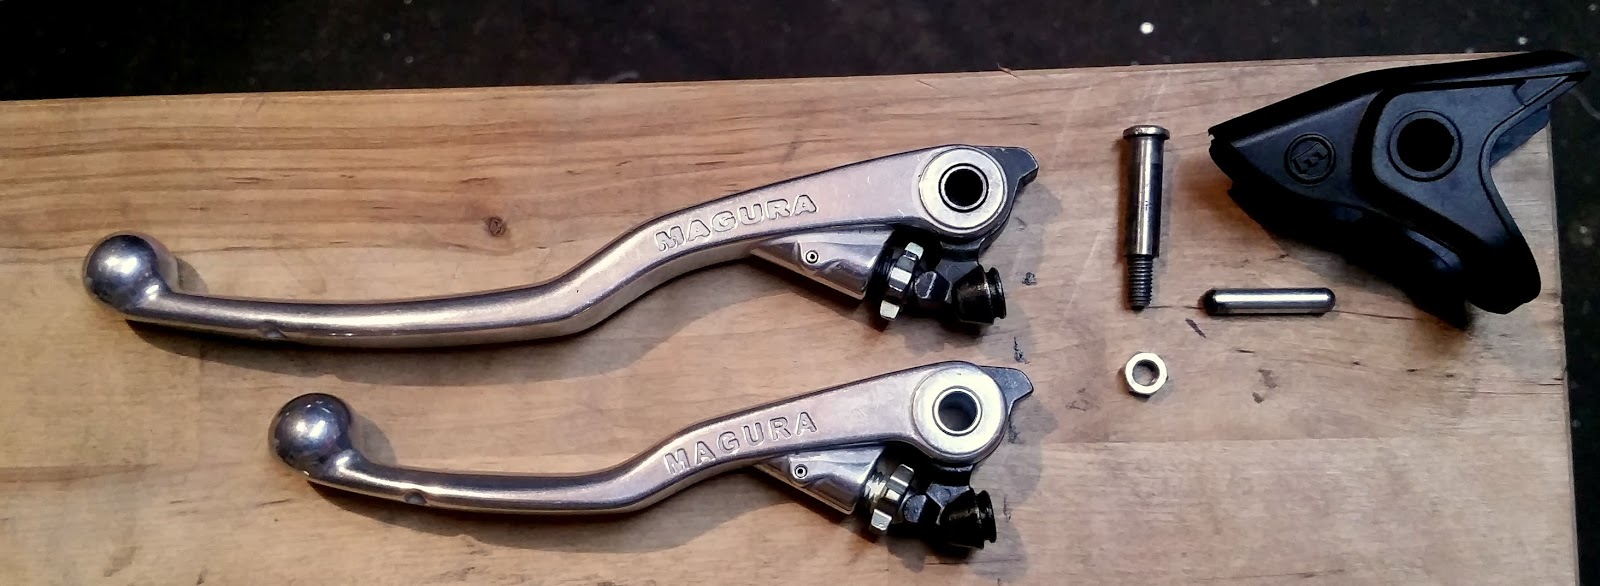 Ktm Easy Pull Clutch Lever